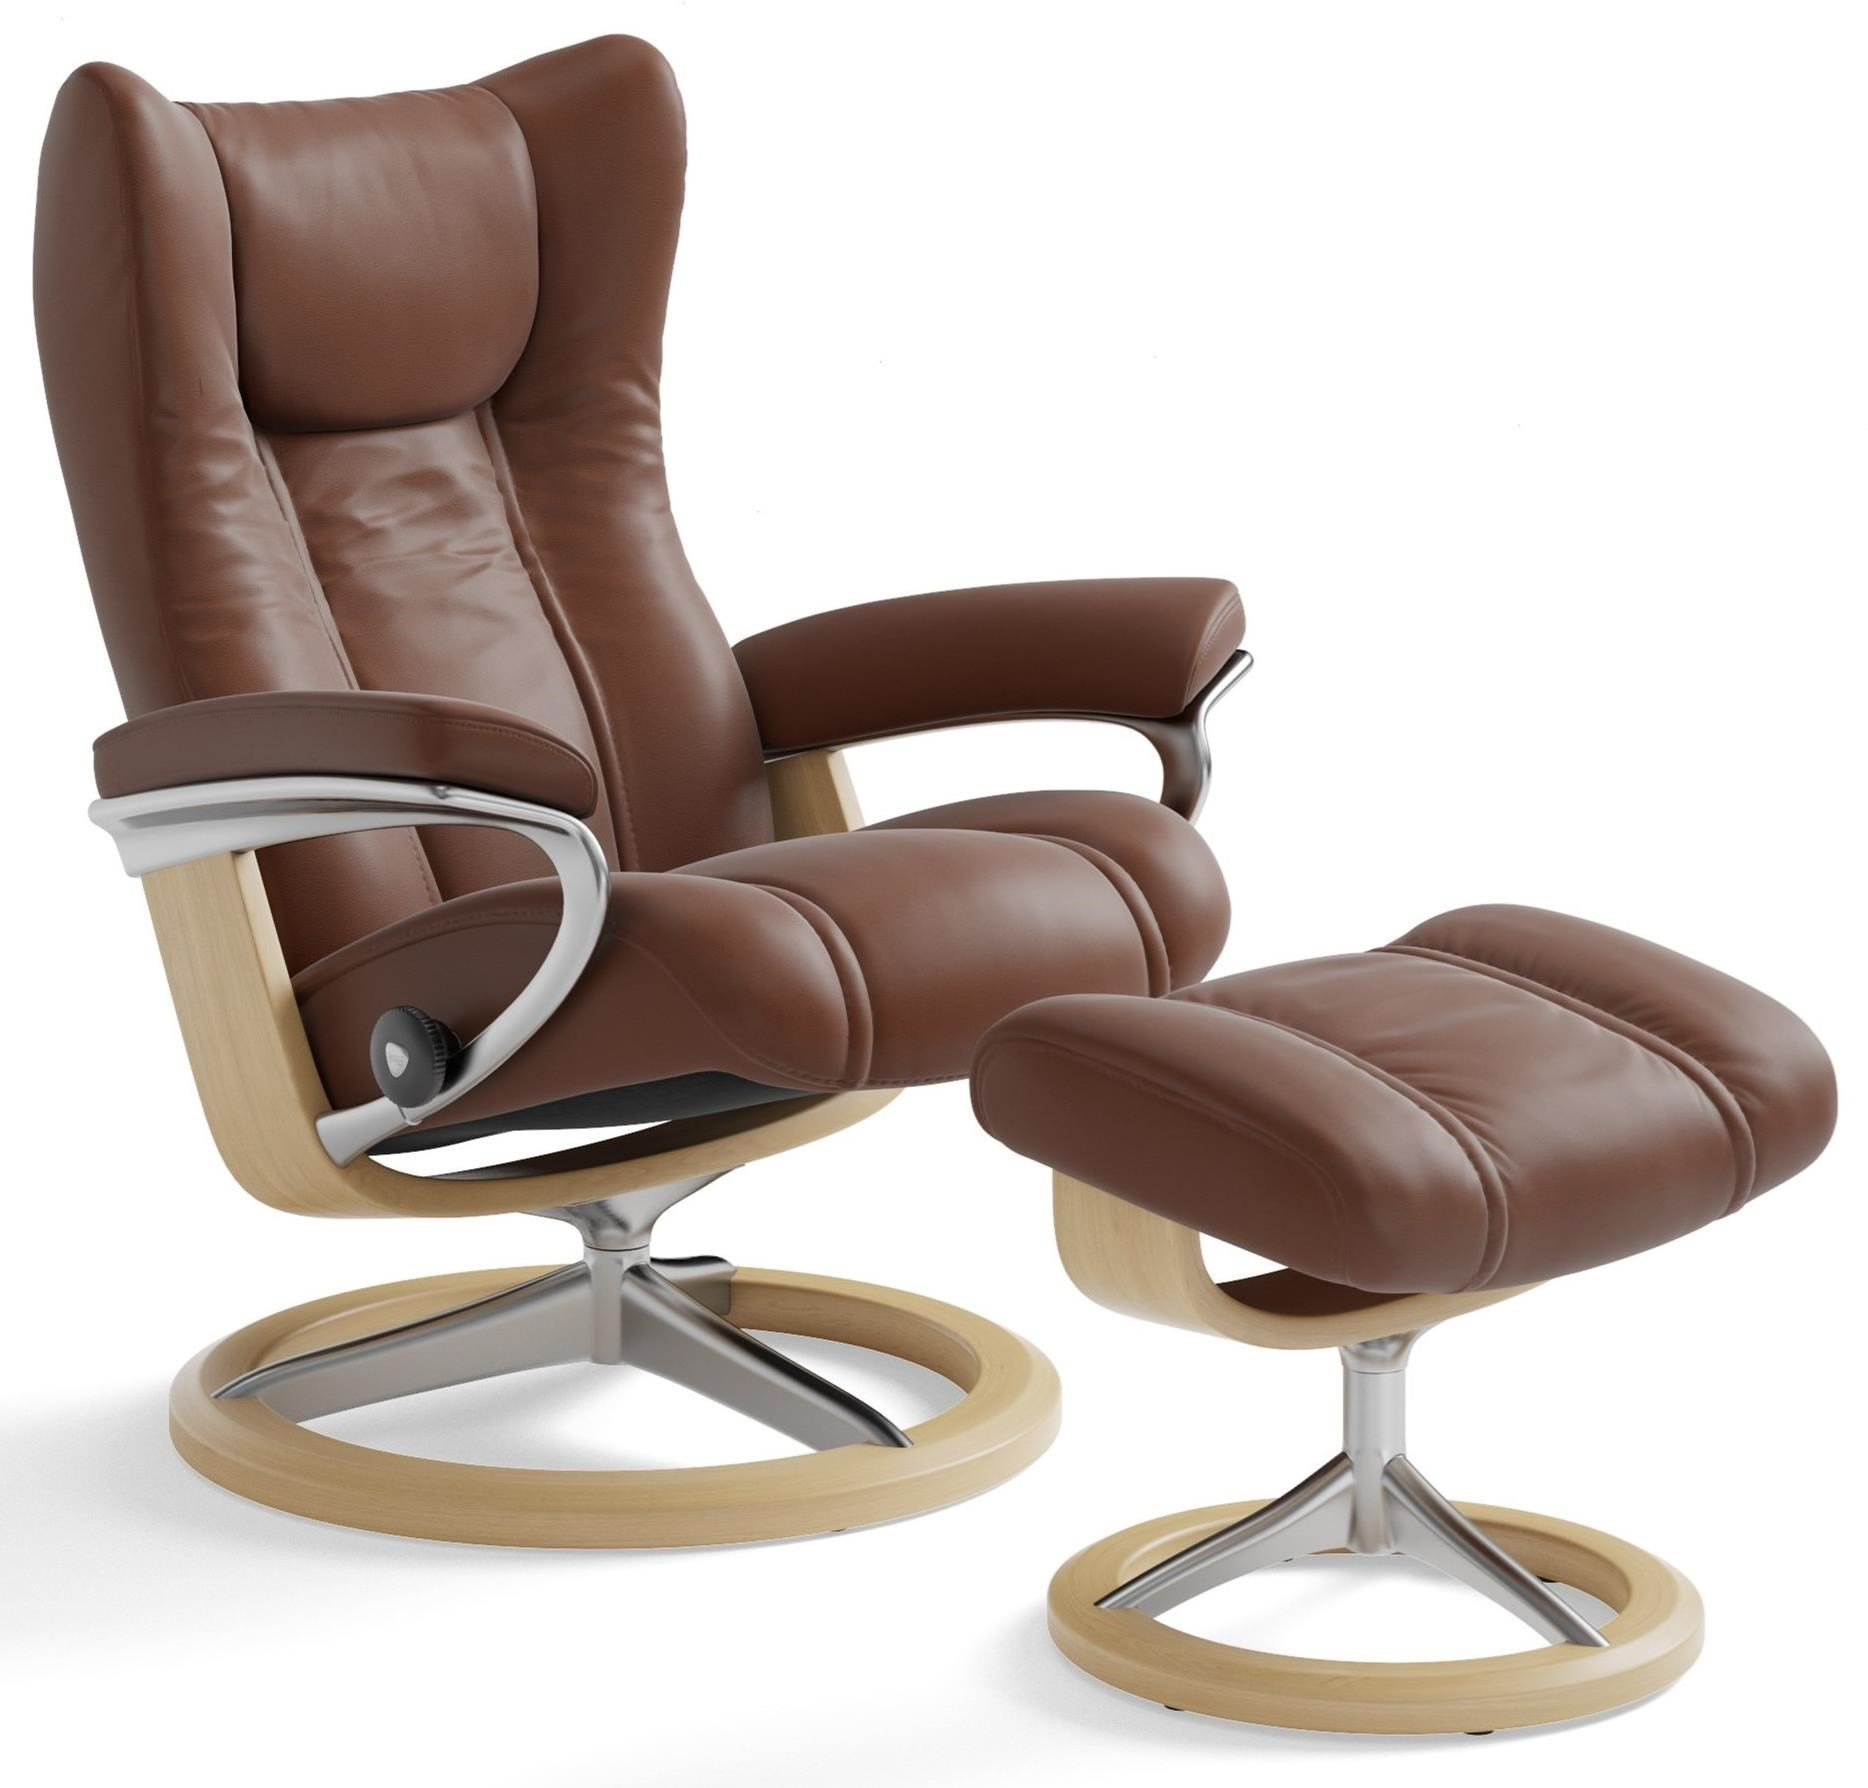 stressless chair sizes ikea poang replacement parts wing 1161315 medium reclining ottoman with shown may not represent exact size indicated